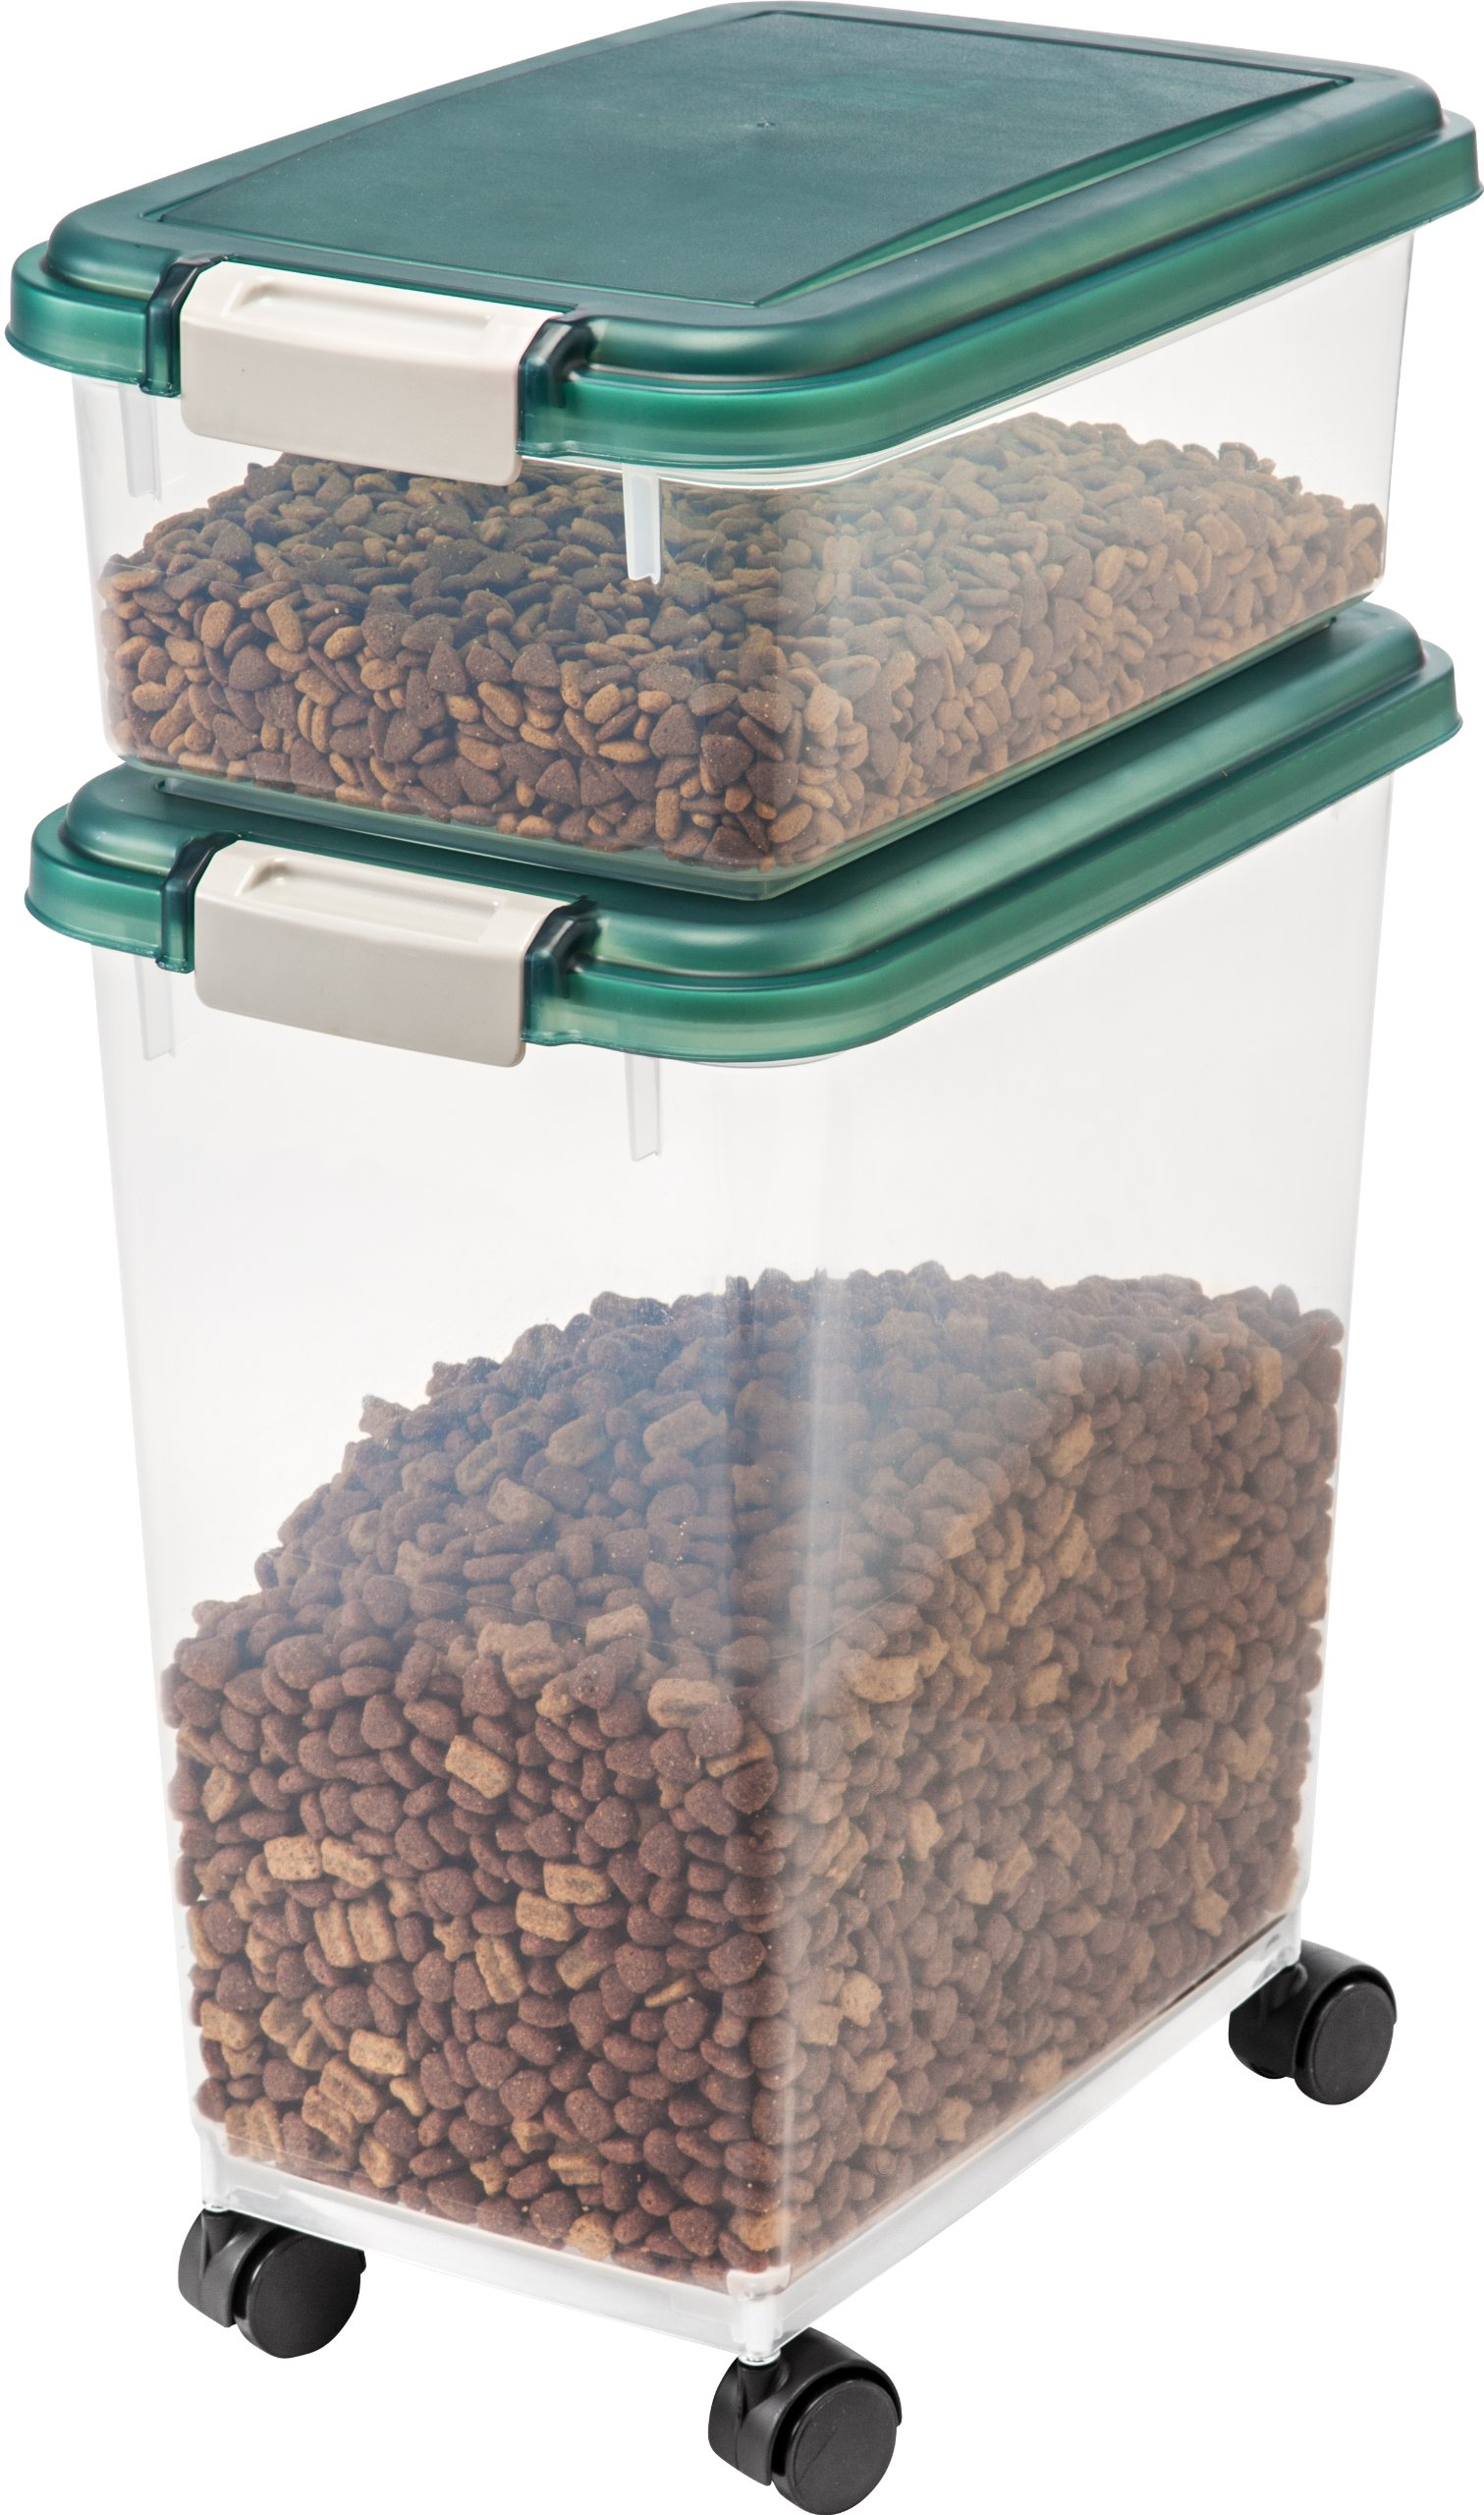 IRIS Airtight Pet Food Treat Storage Container Combo, Green